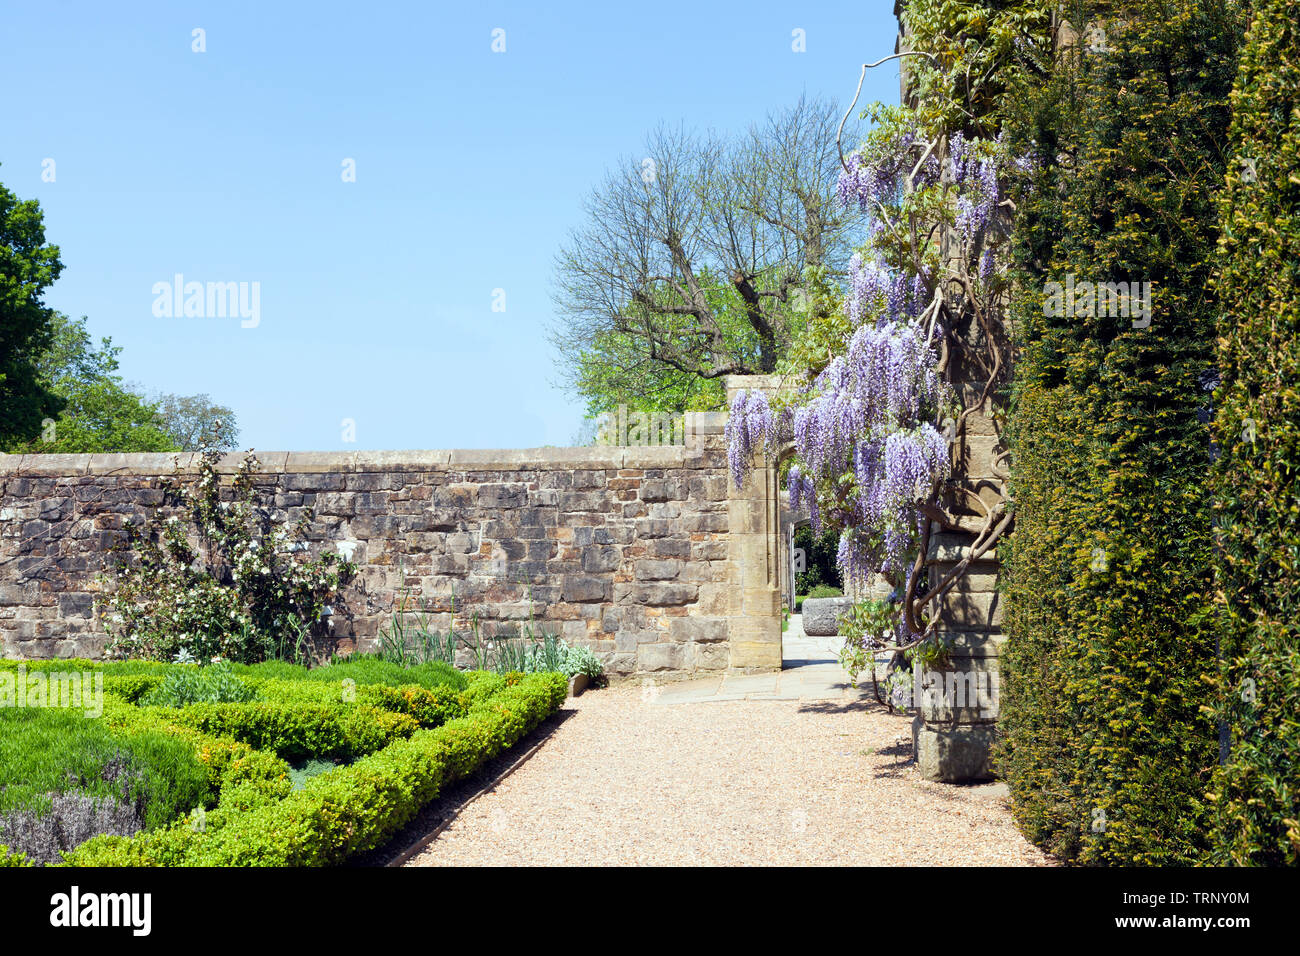 Sunny garden with flowering purple wisteria on a stone wall and small trimmed hedge plants . Stock Photo